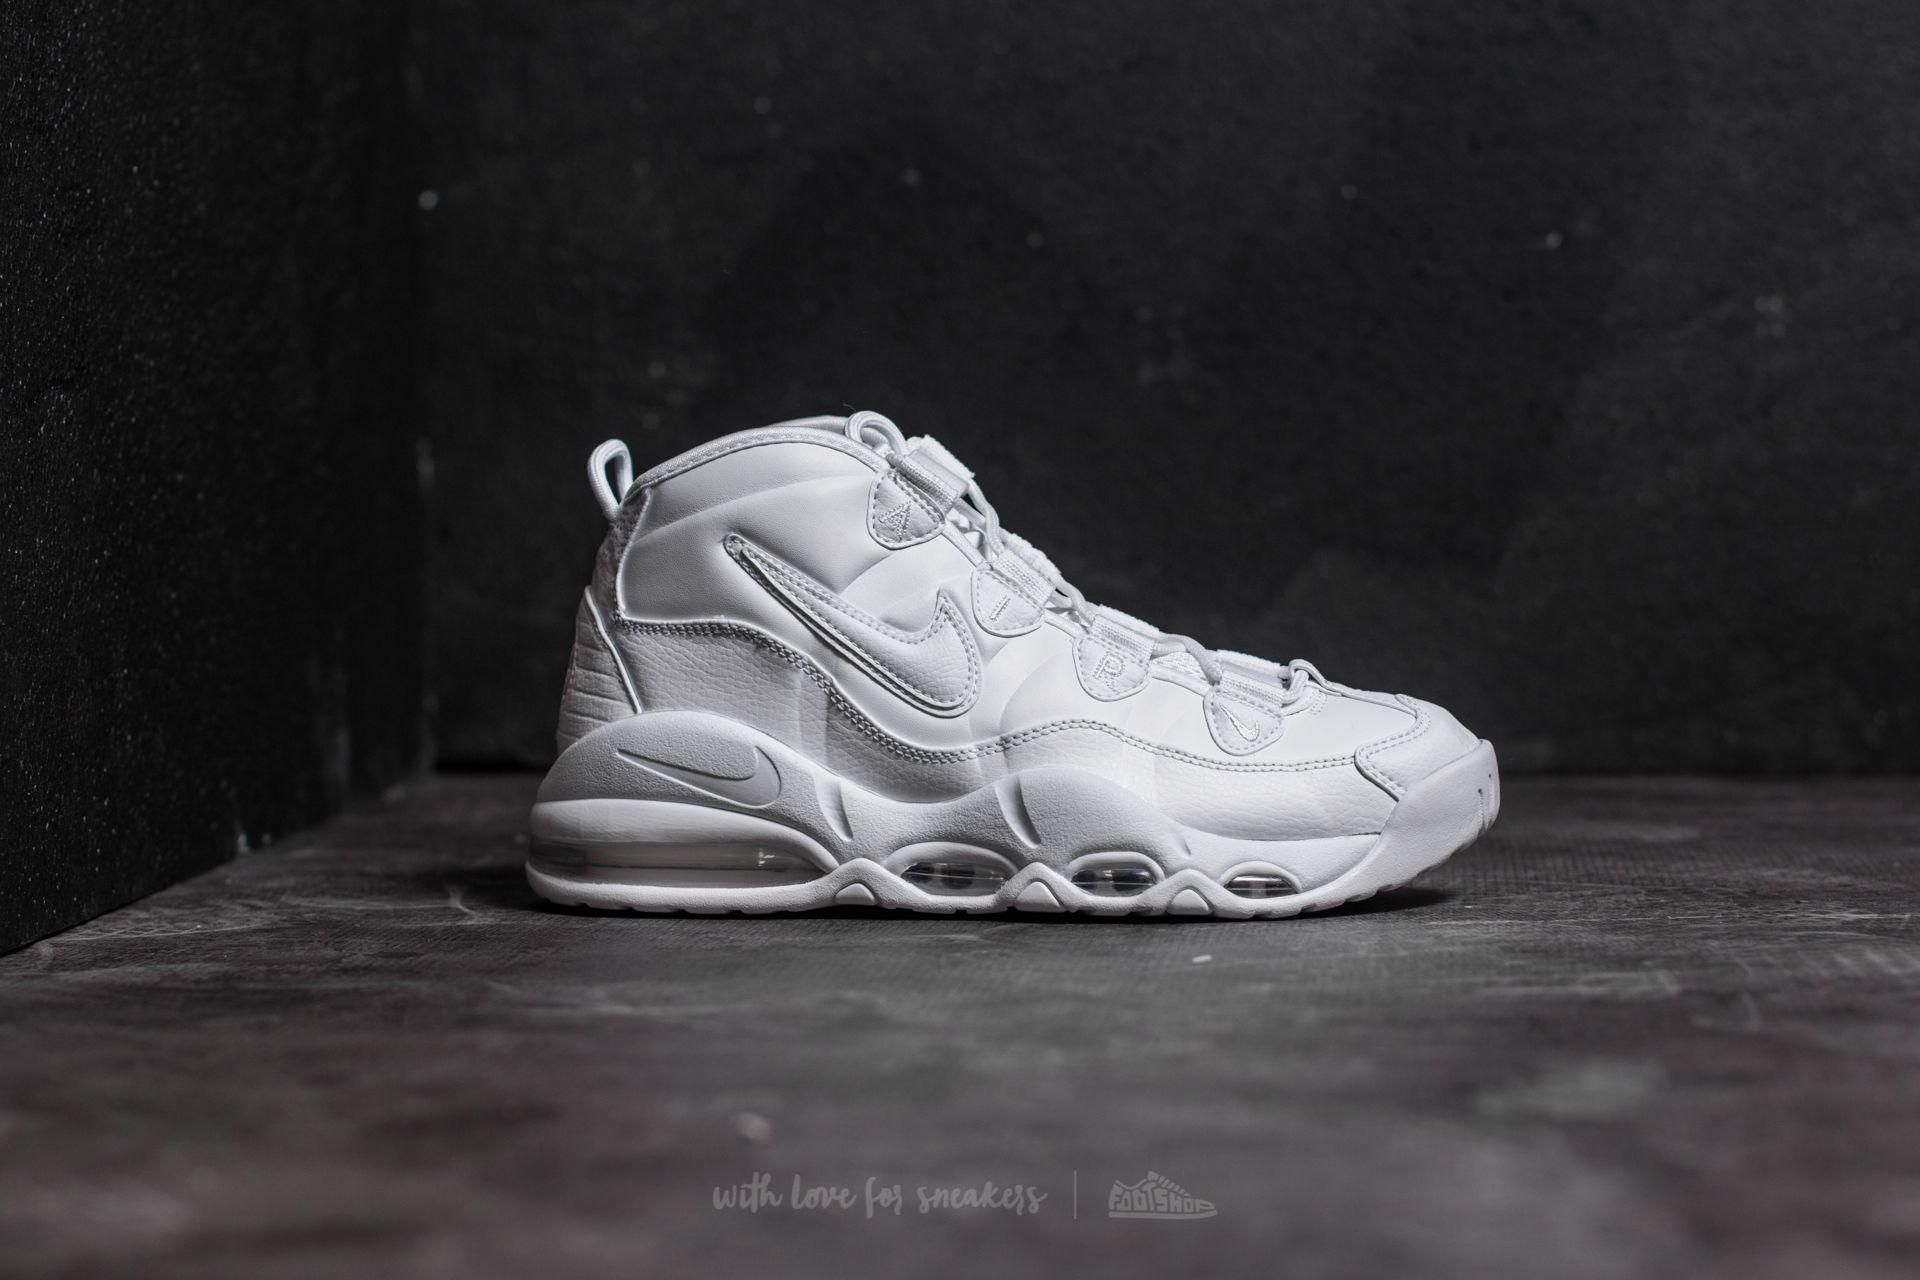 premium selection d436f 8c2ac denmark air max uptempo 95 white 15612 c457a